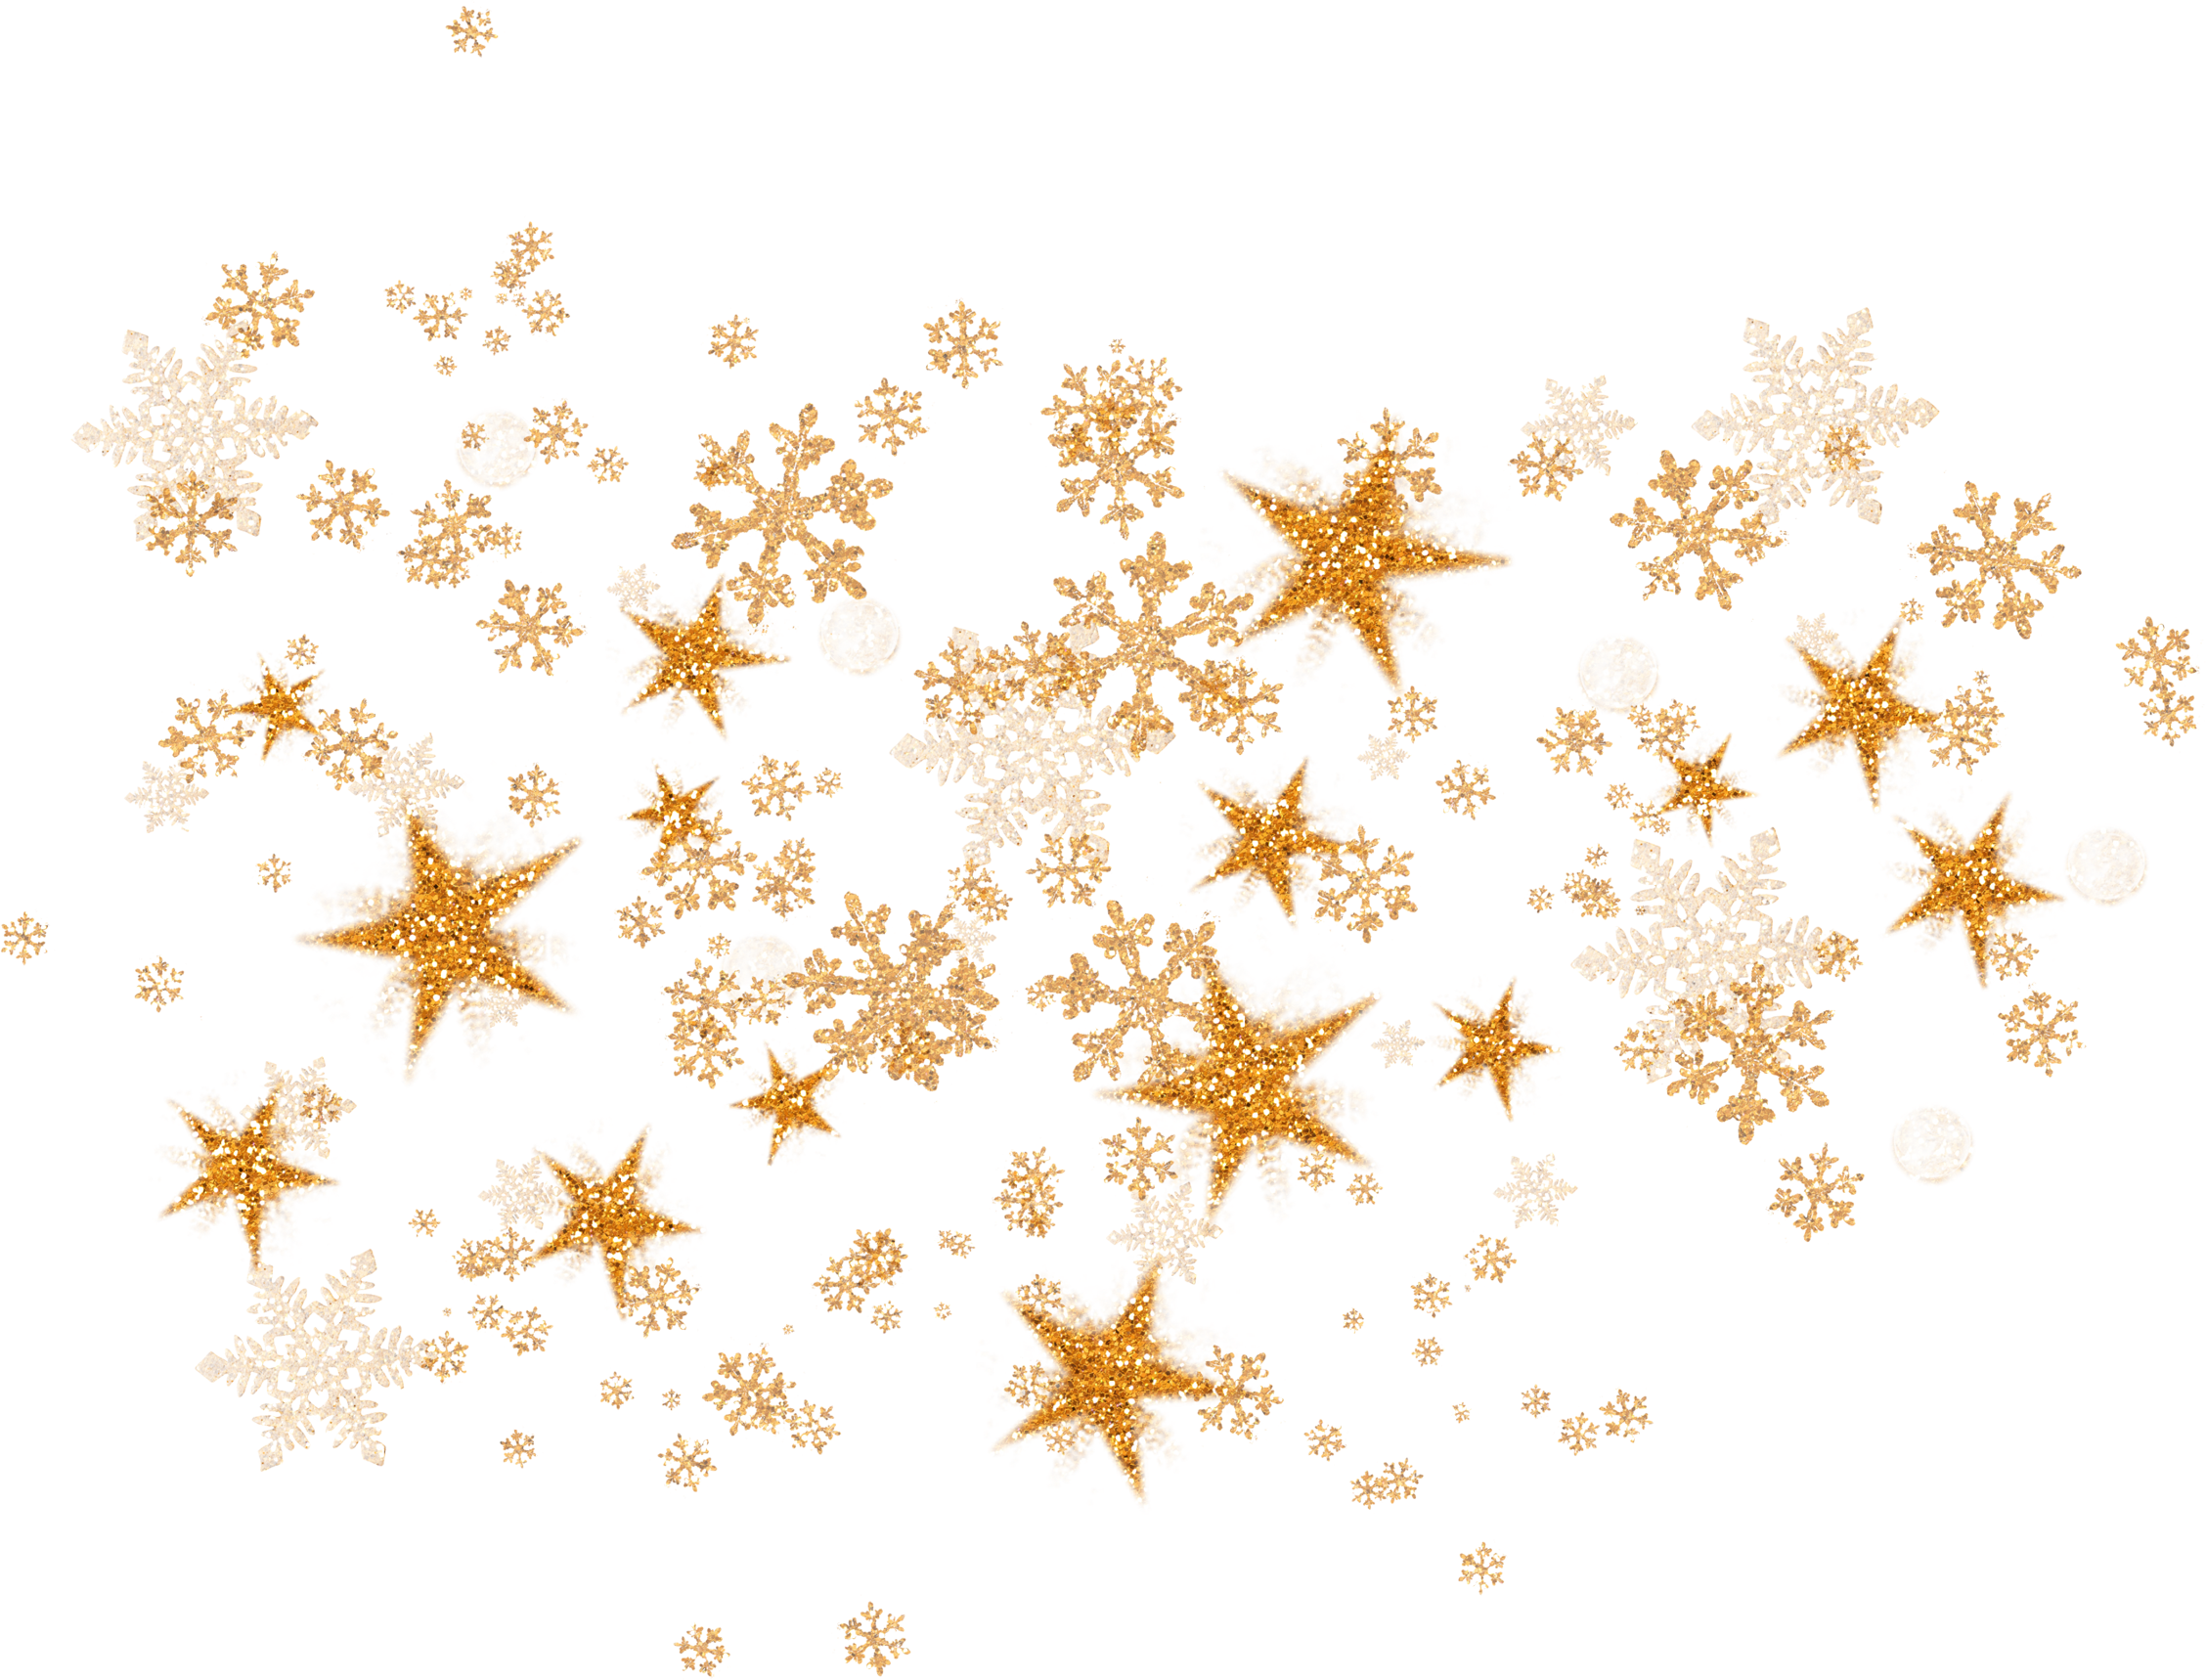 Golden snowflake clipart banner black and white stock Golden Snowflake png images free download banner black and white stock